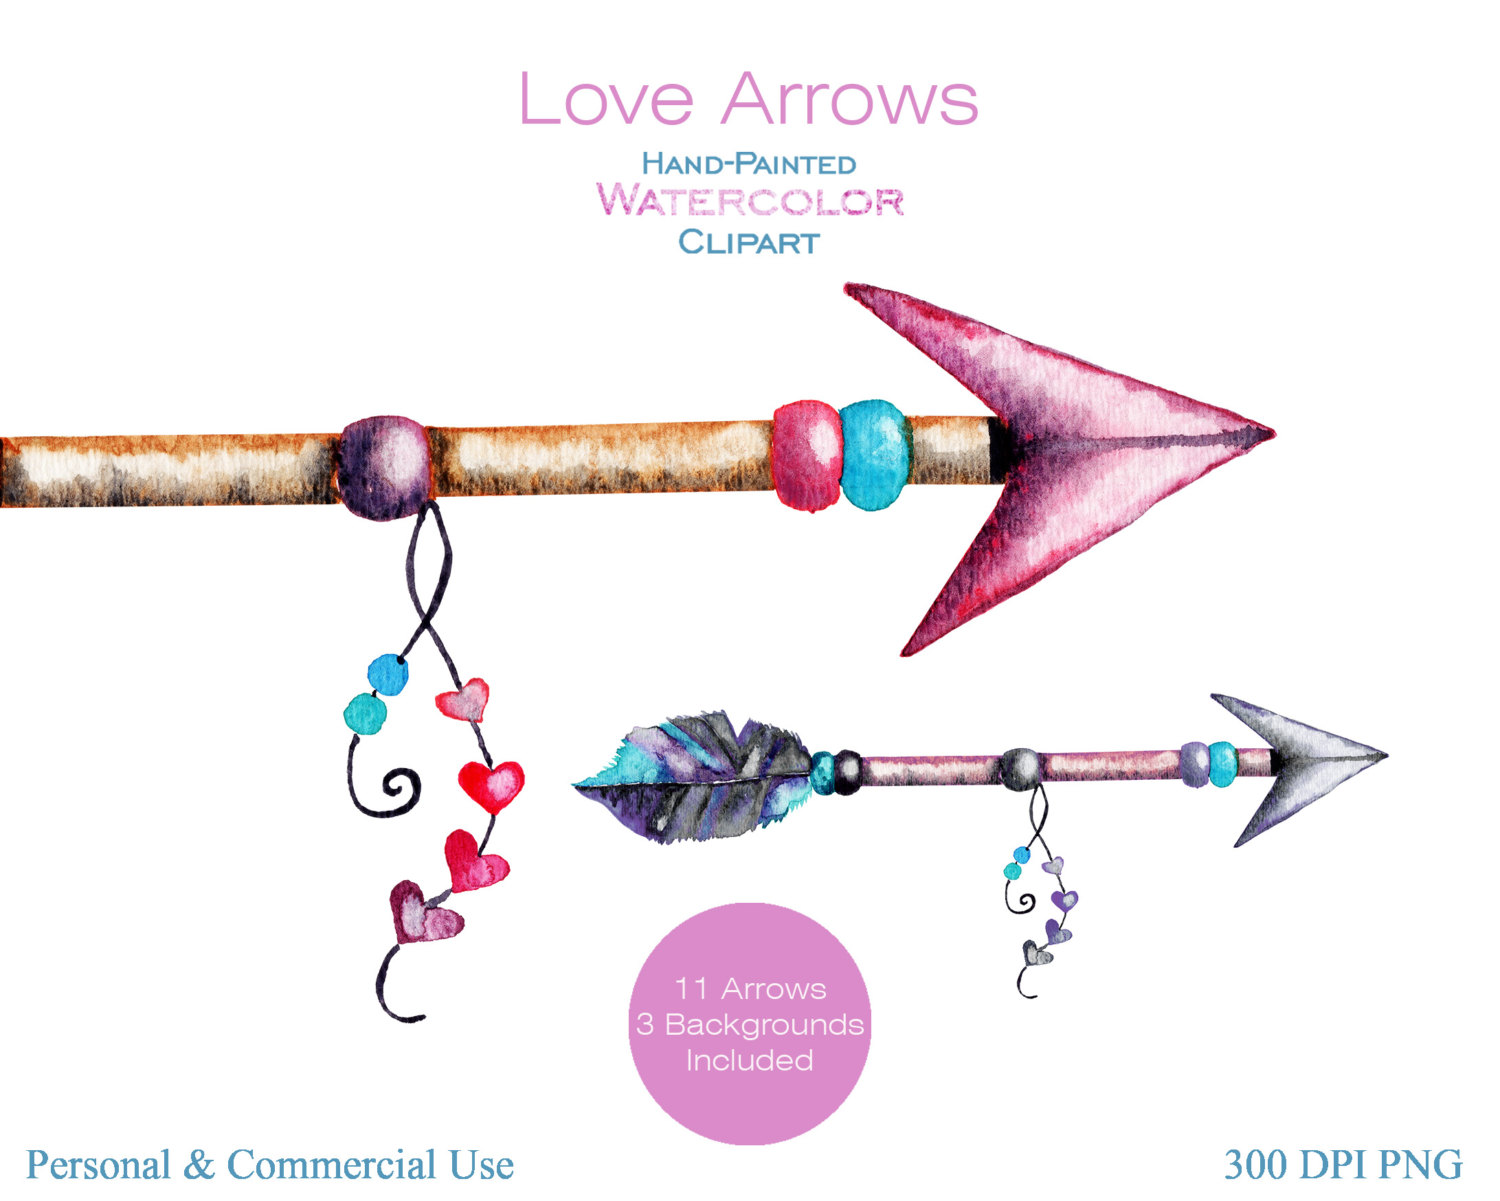 Handpainted watercolor commercial use. 3 tribal arrow clipart